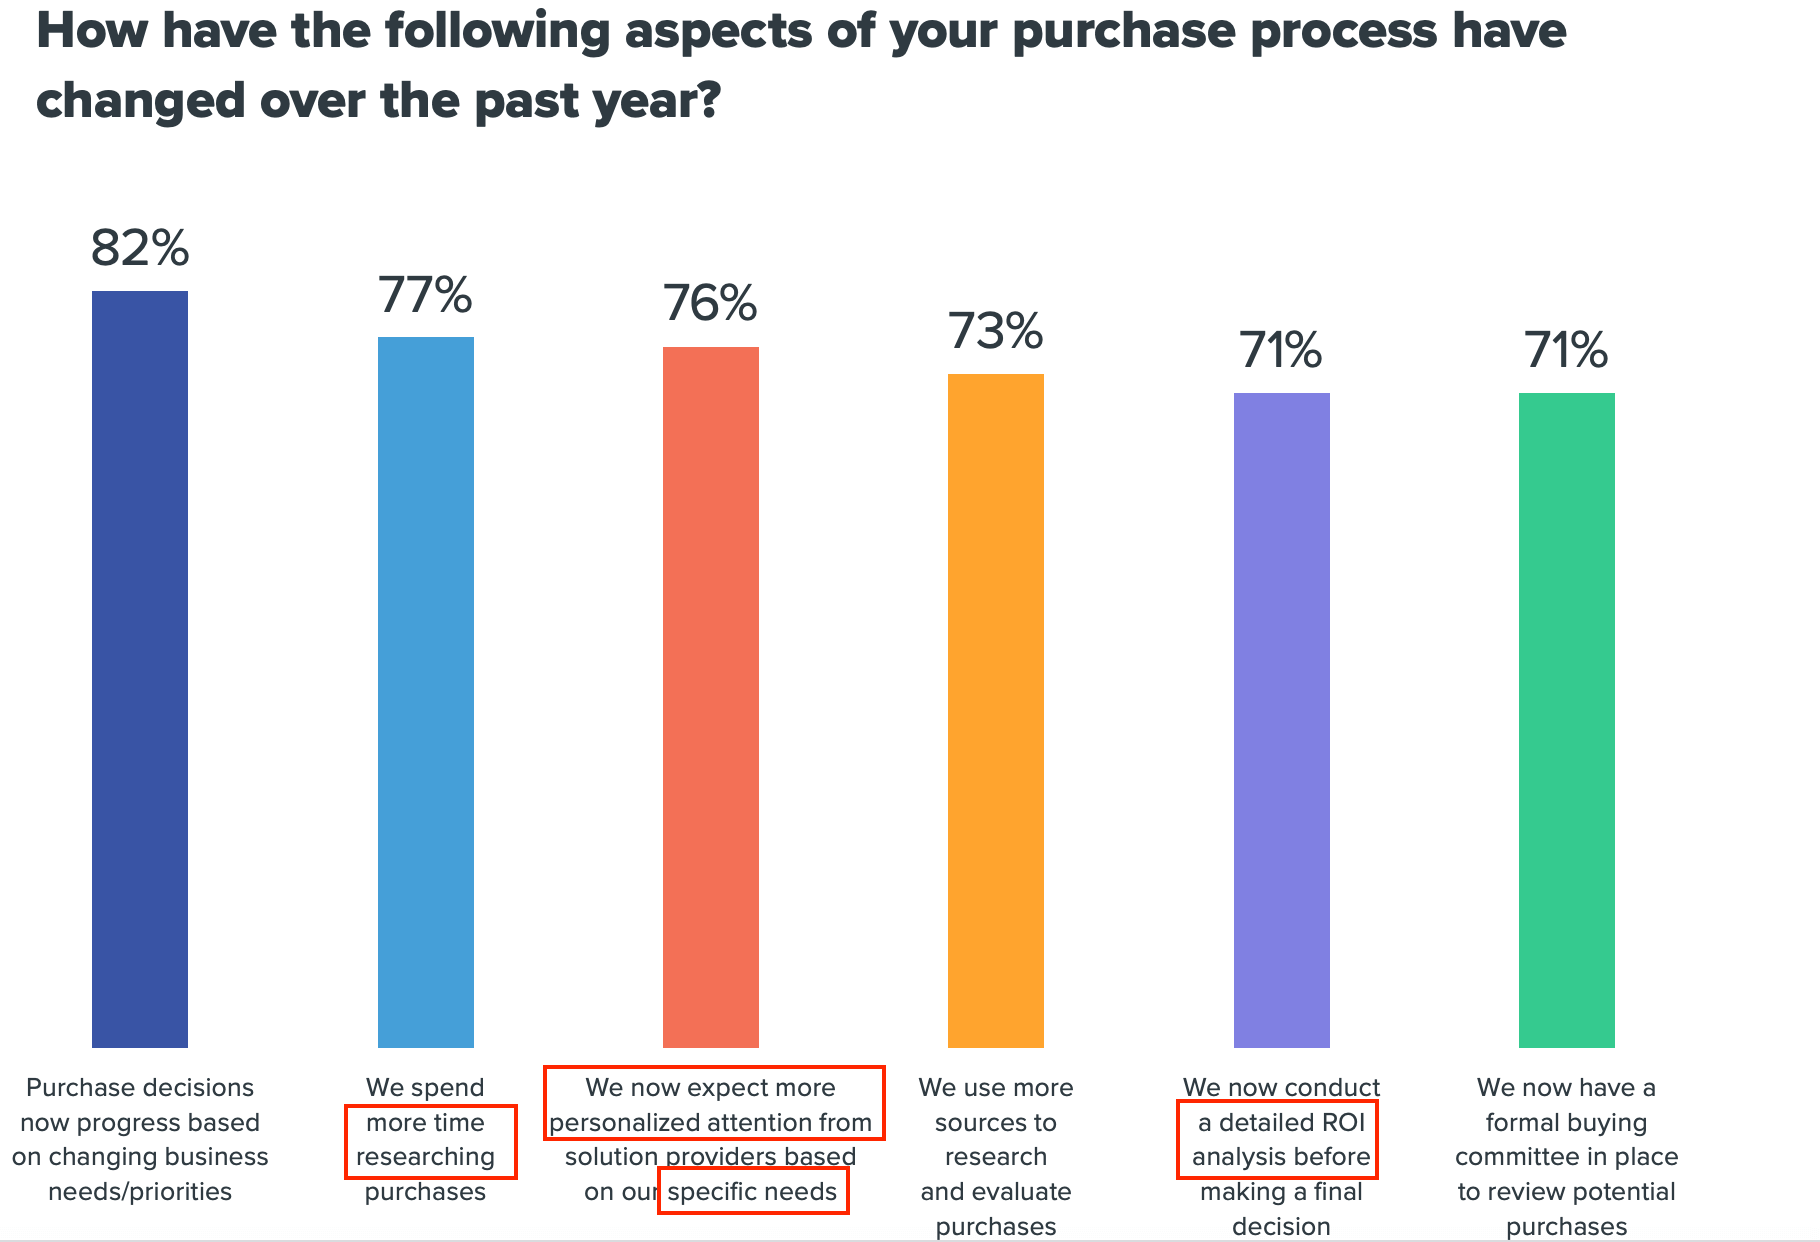 b2b marketing strategies cater to more research